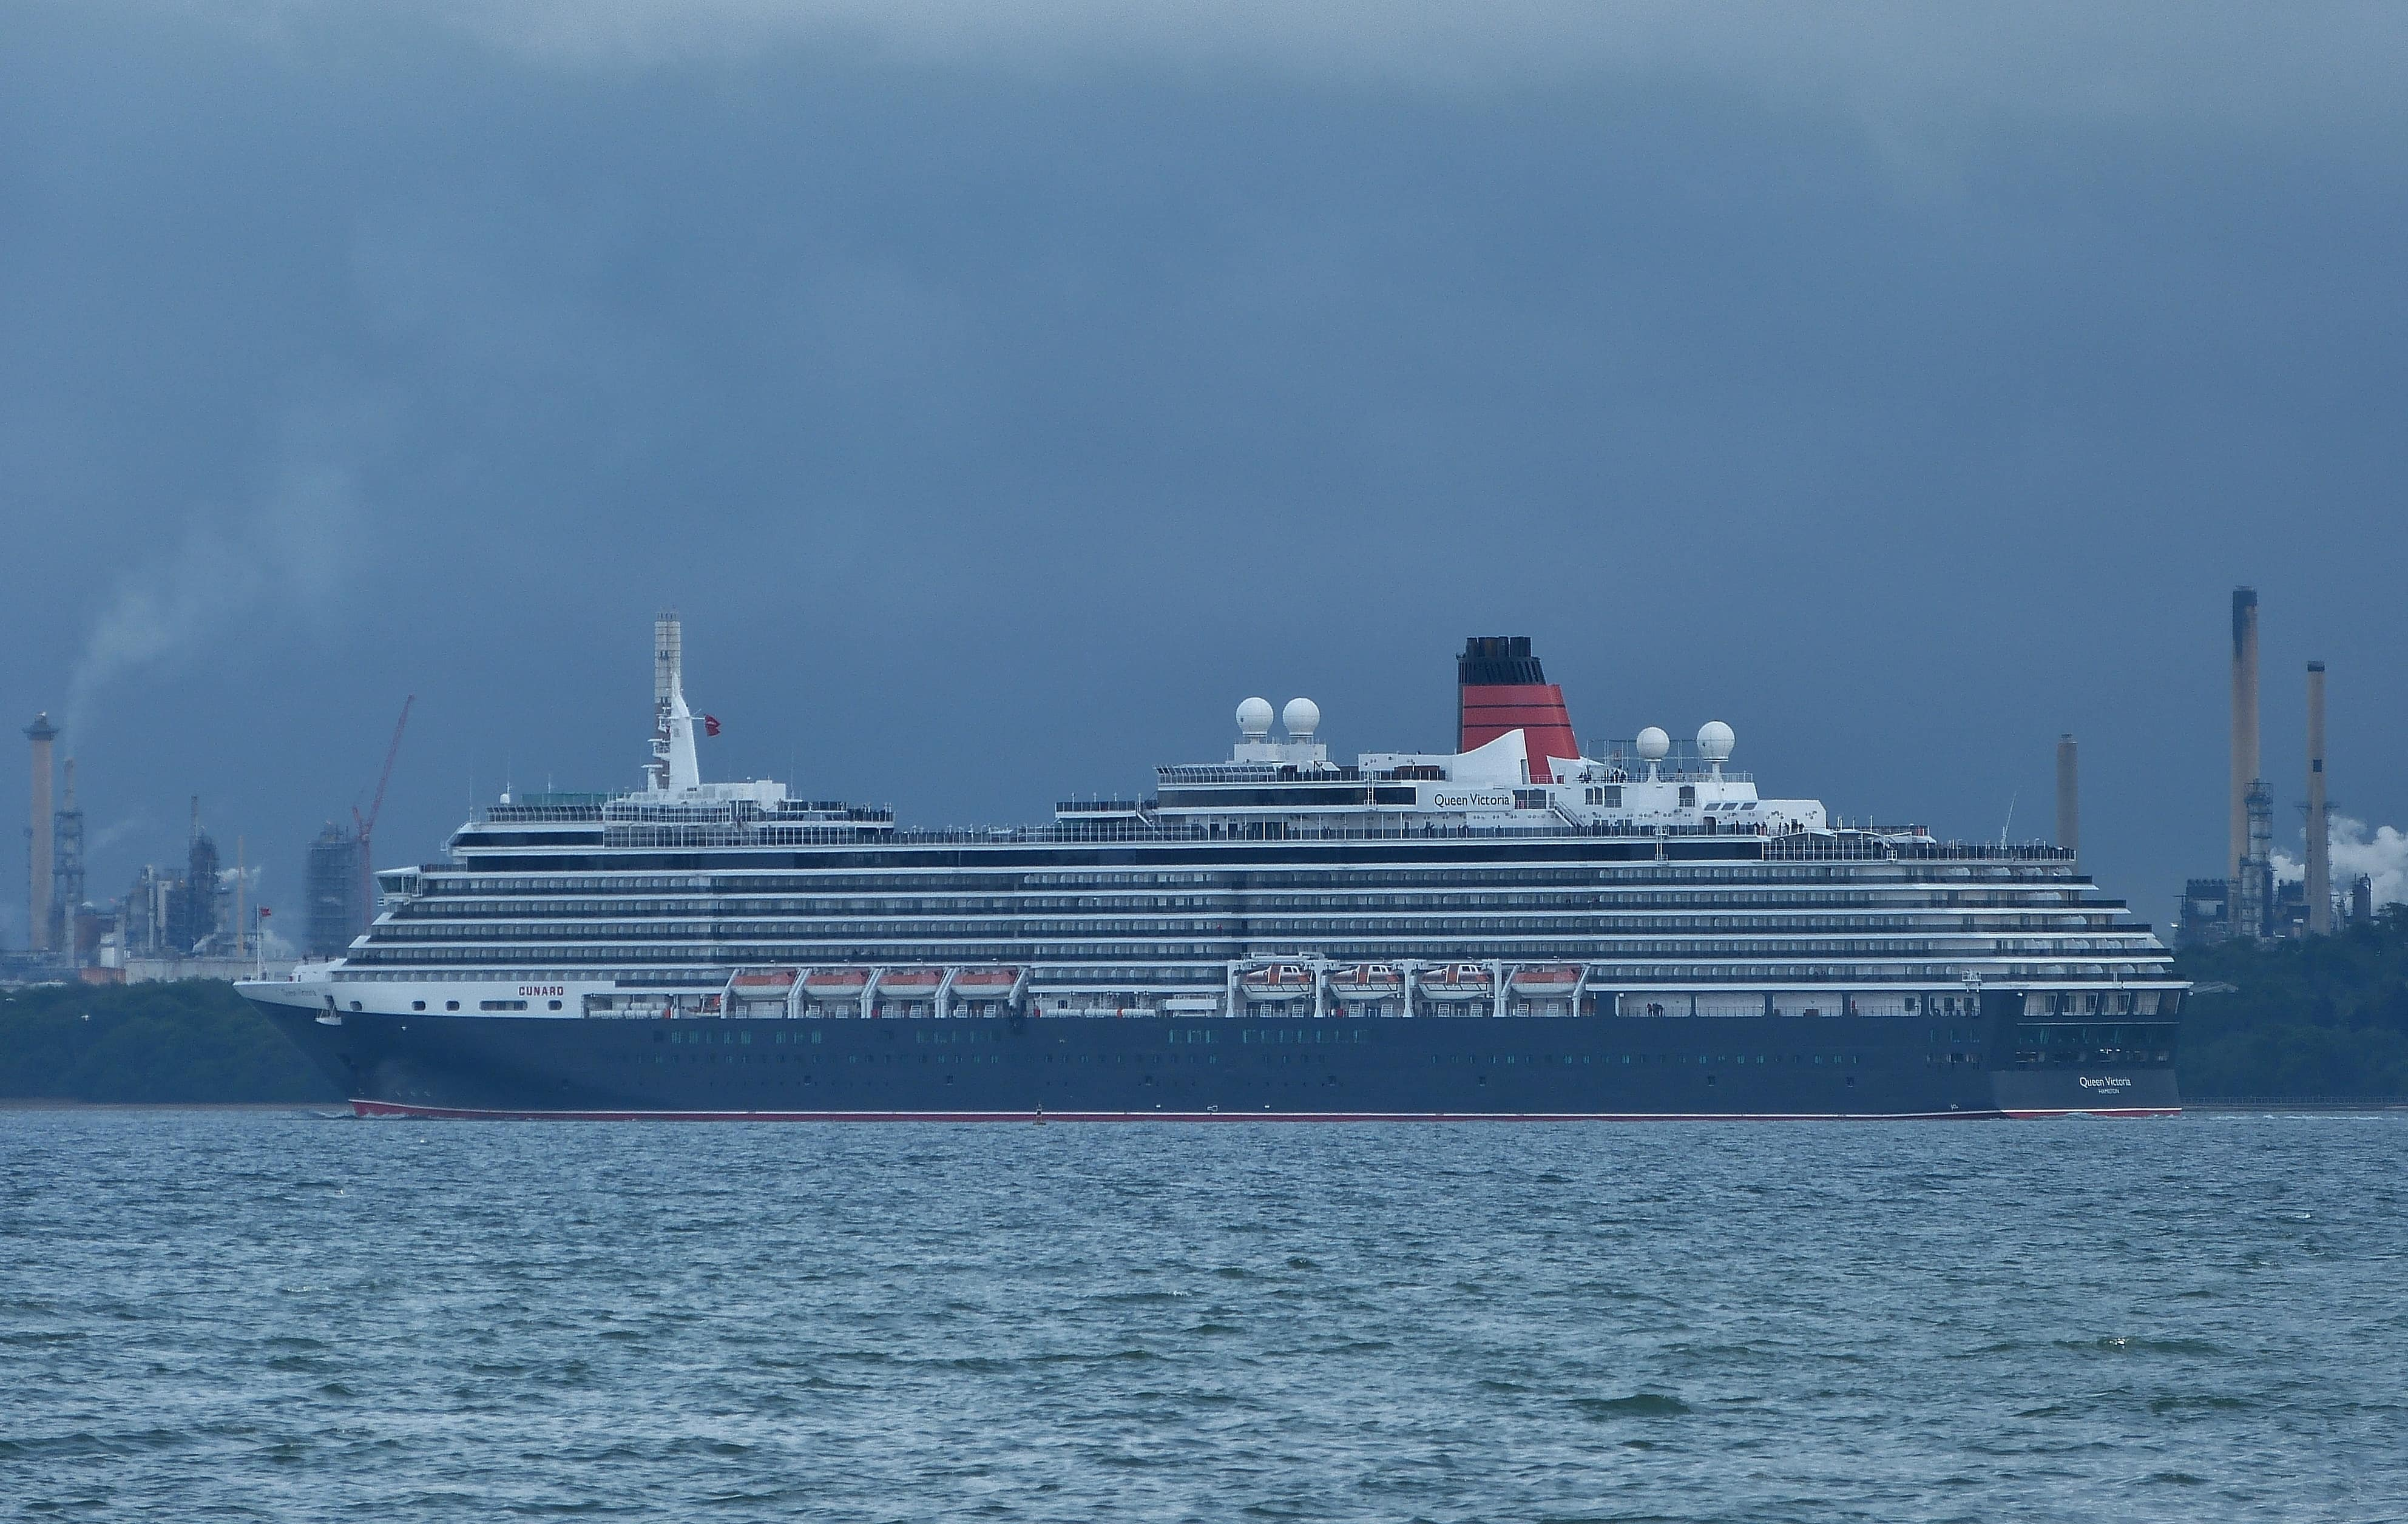 Weston Shore southampton cruise ship queen victoria